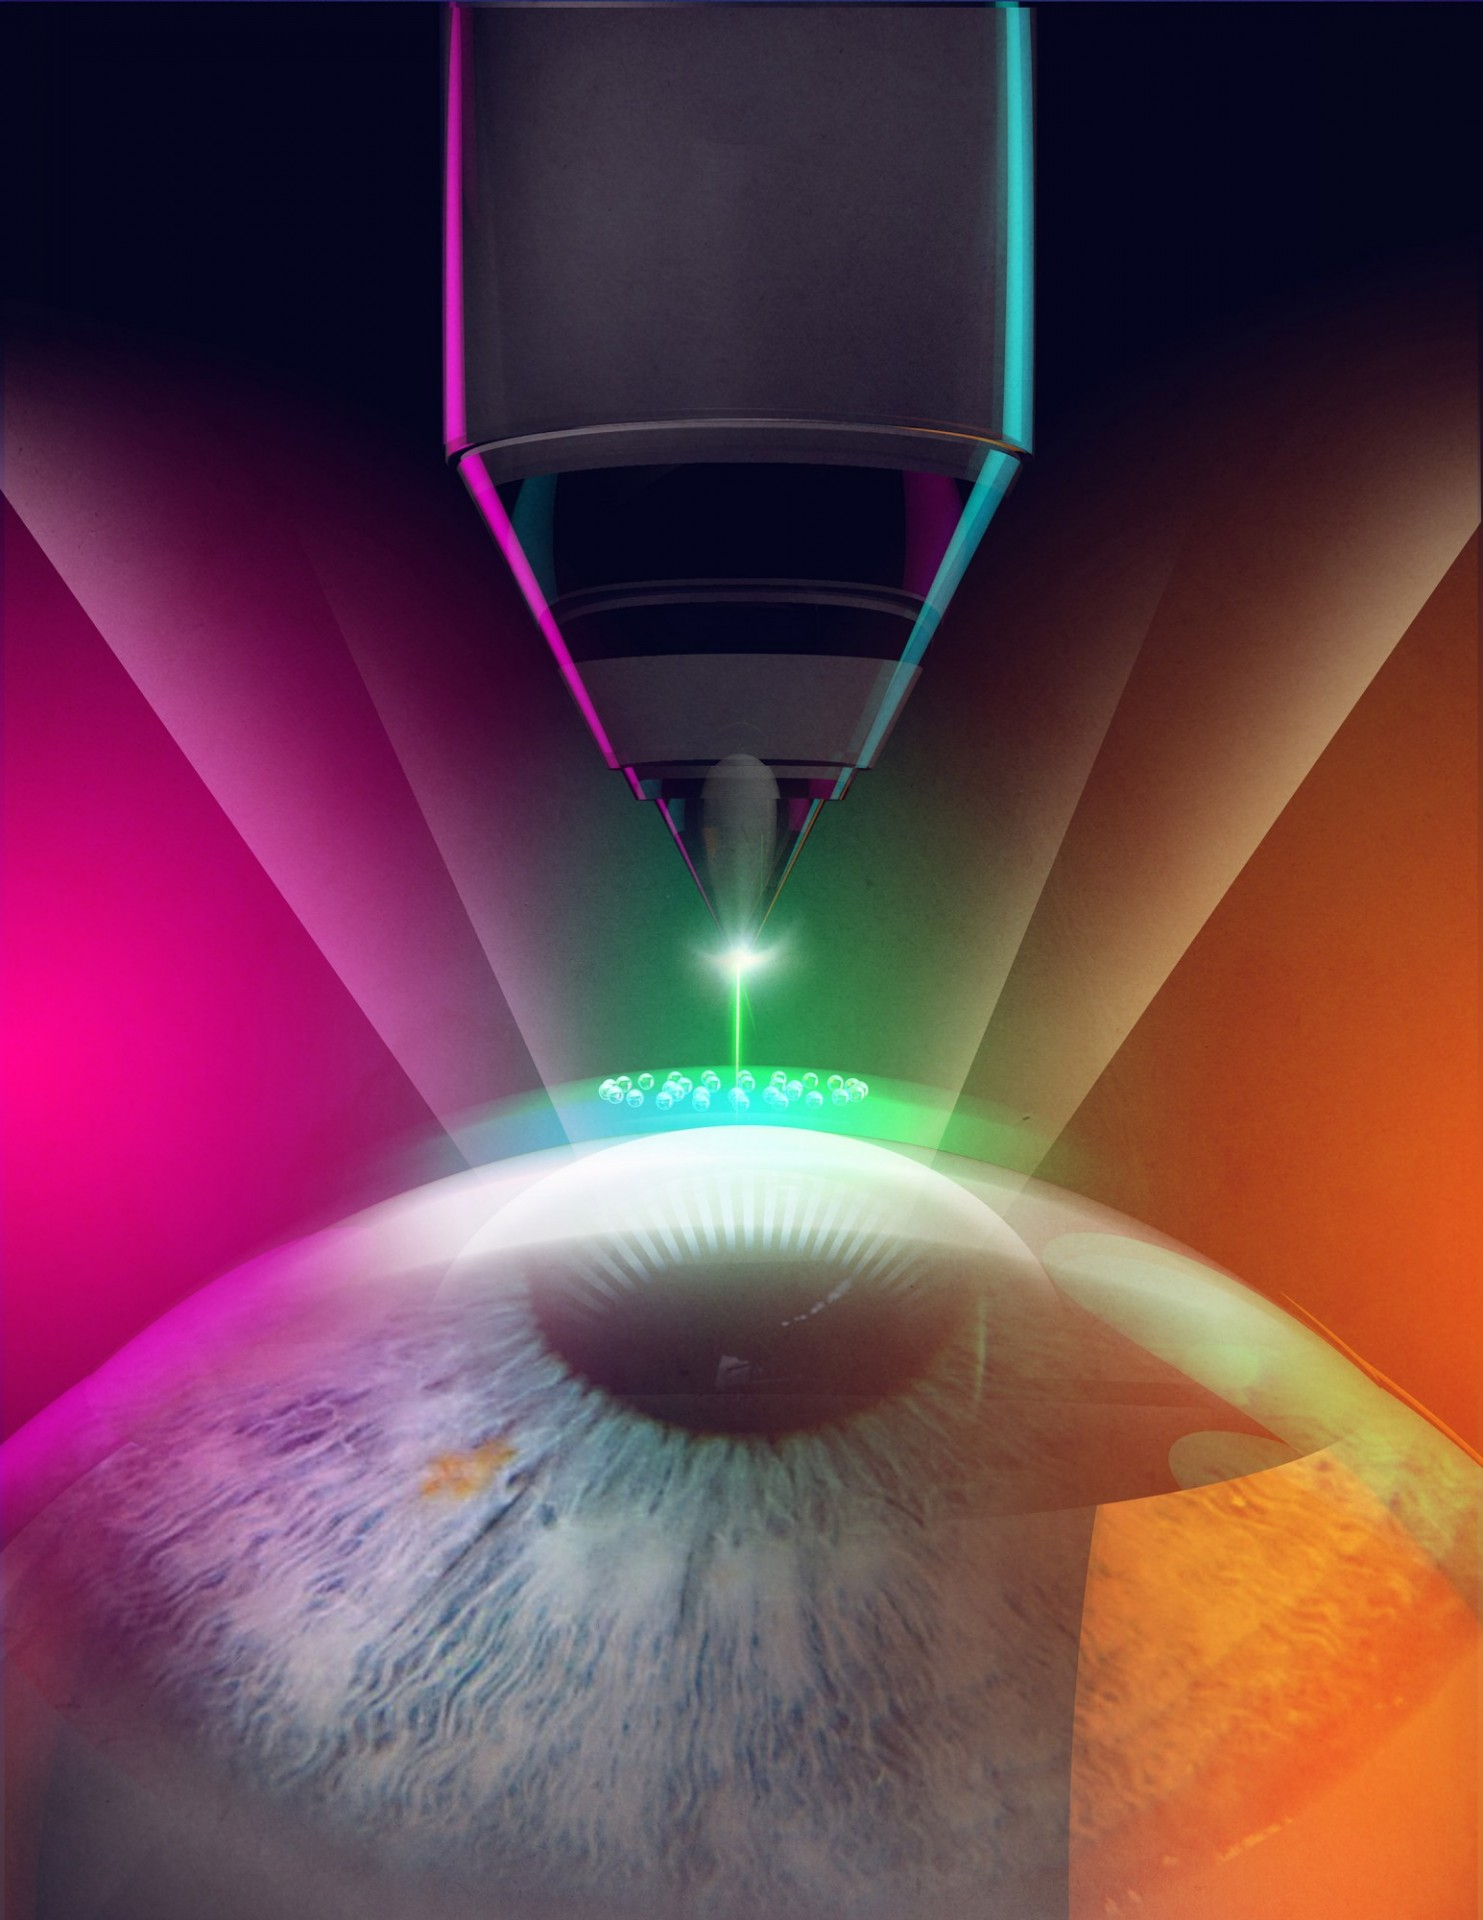 femtosecond laser treatment of the eye